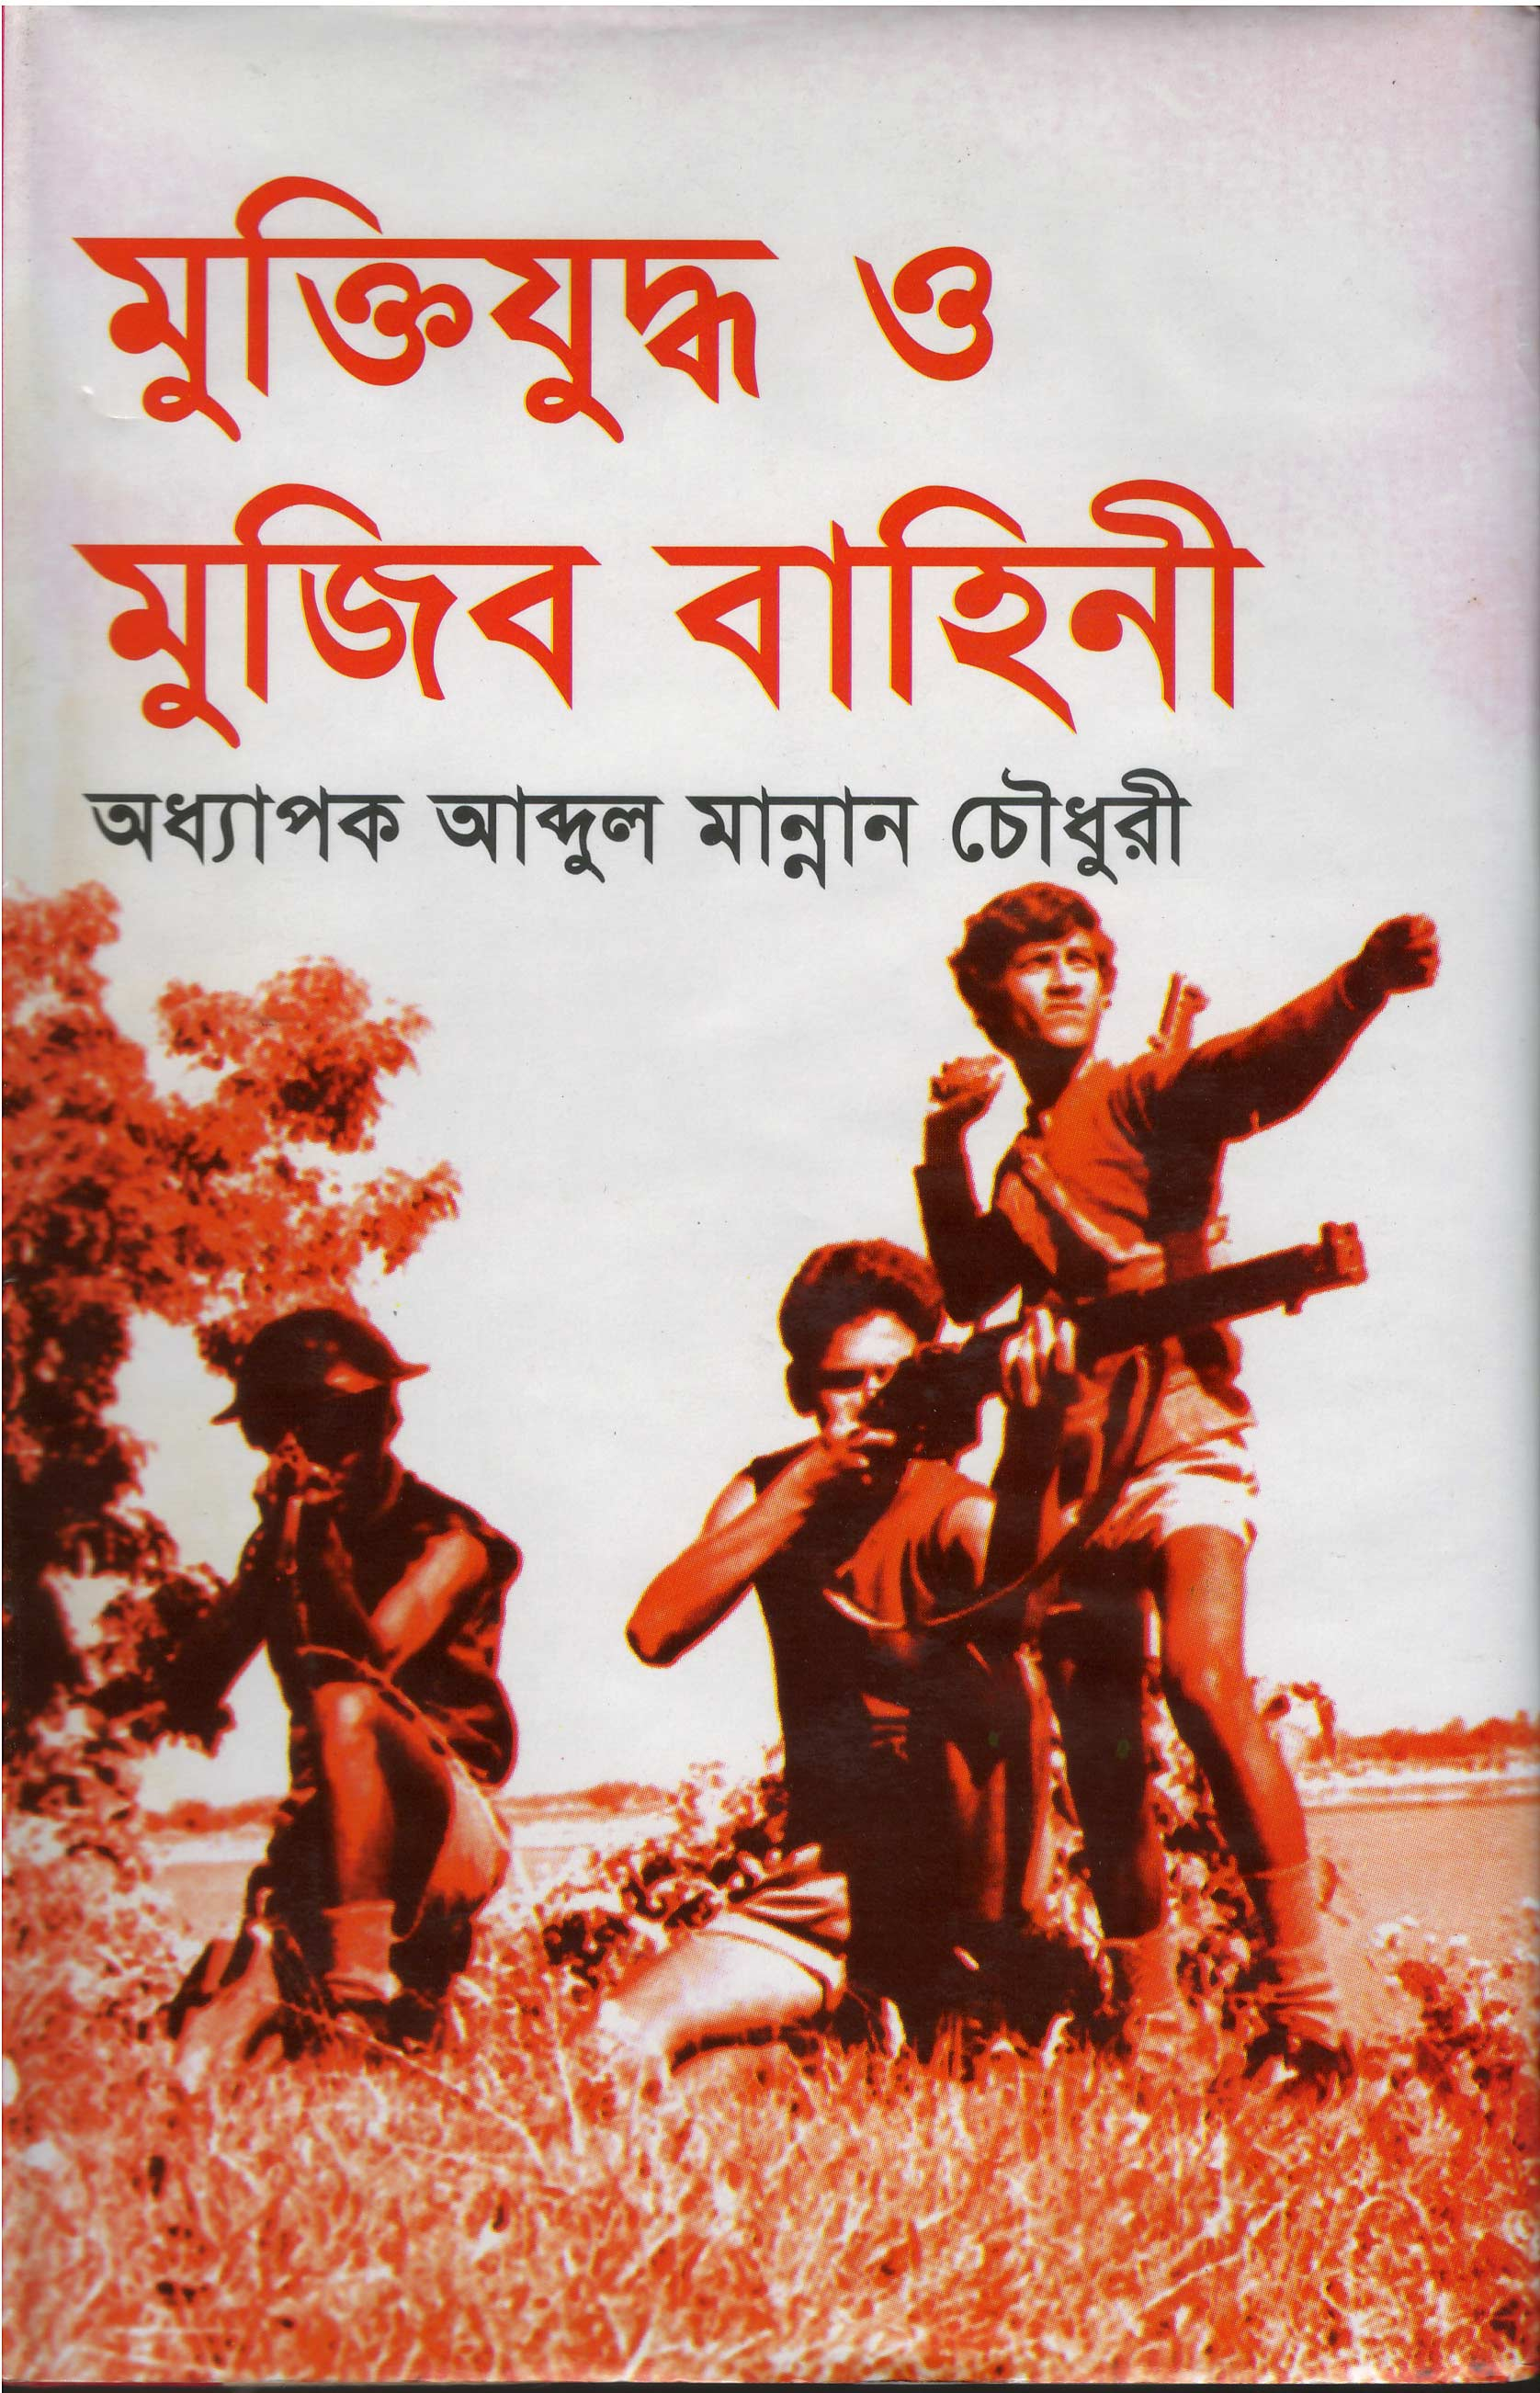 World University Vice Chancellor Book Muktijuddha O Mujib Bahini